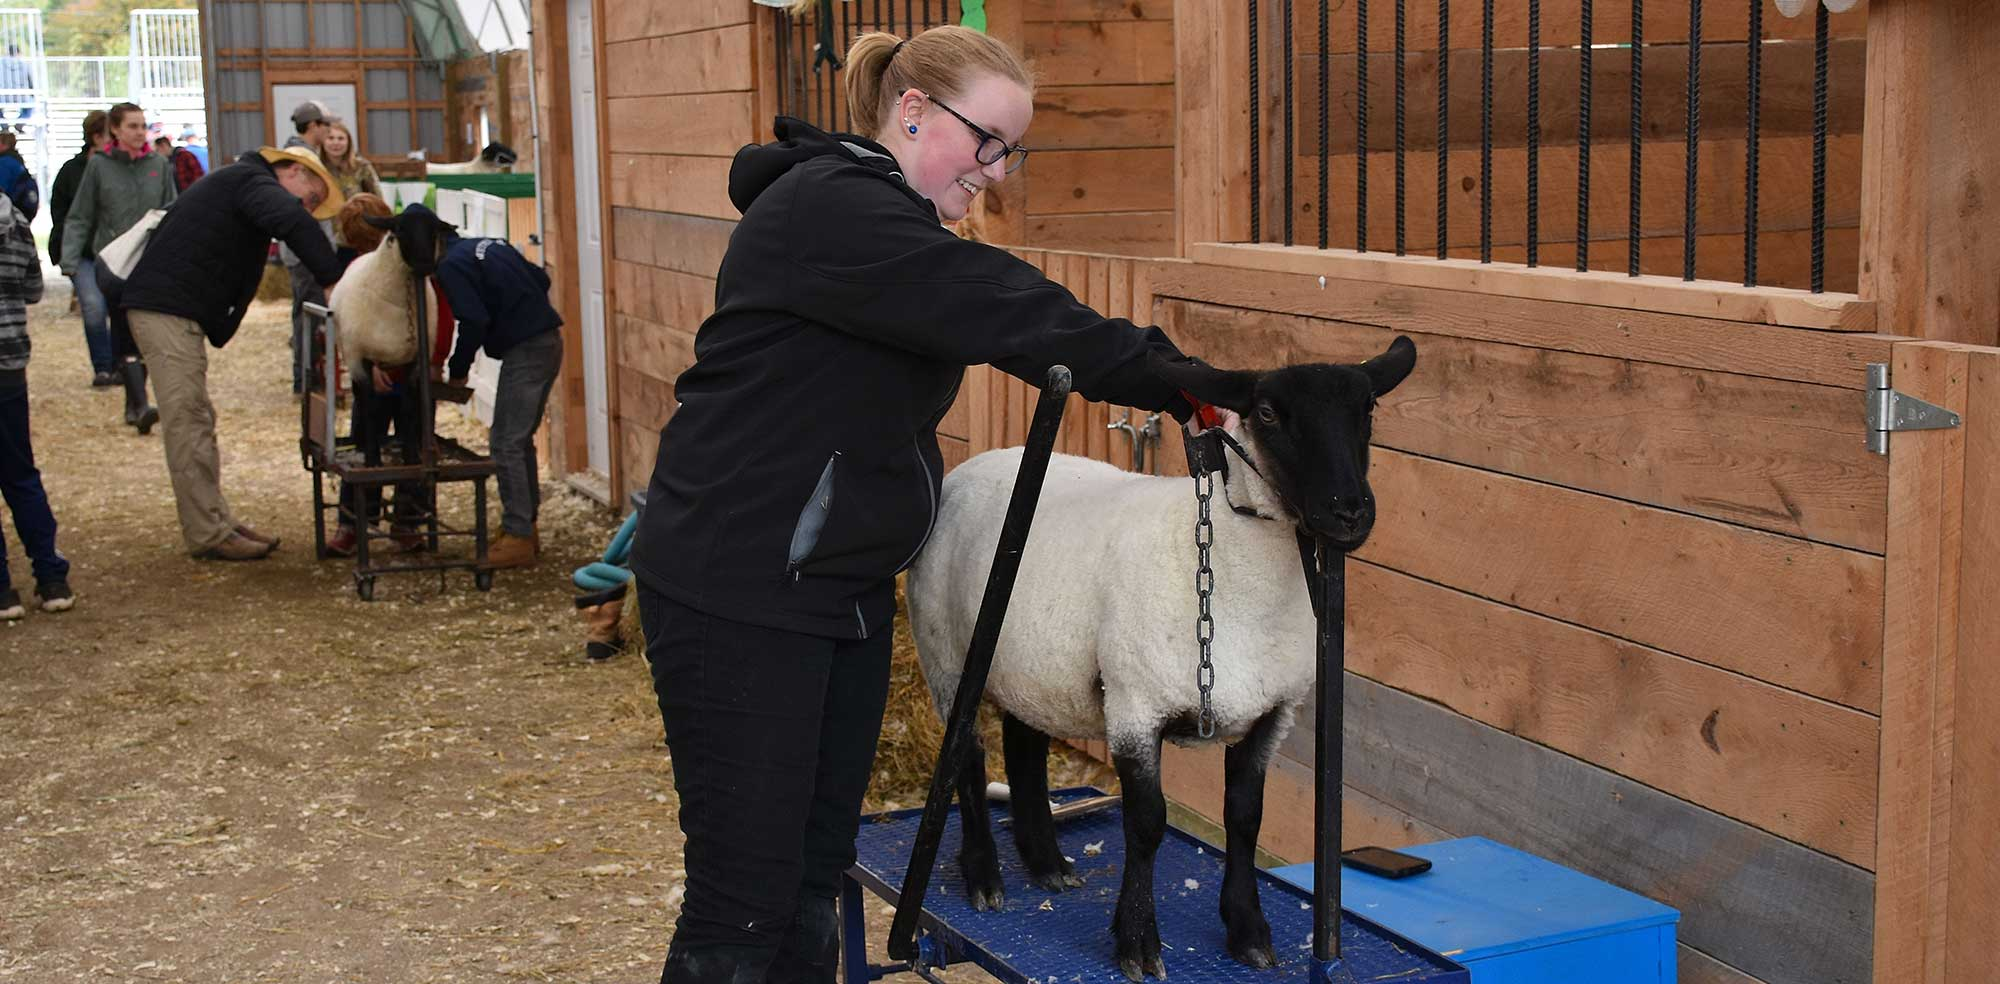 A girl grooming a sheep